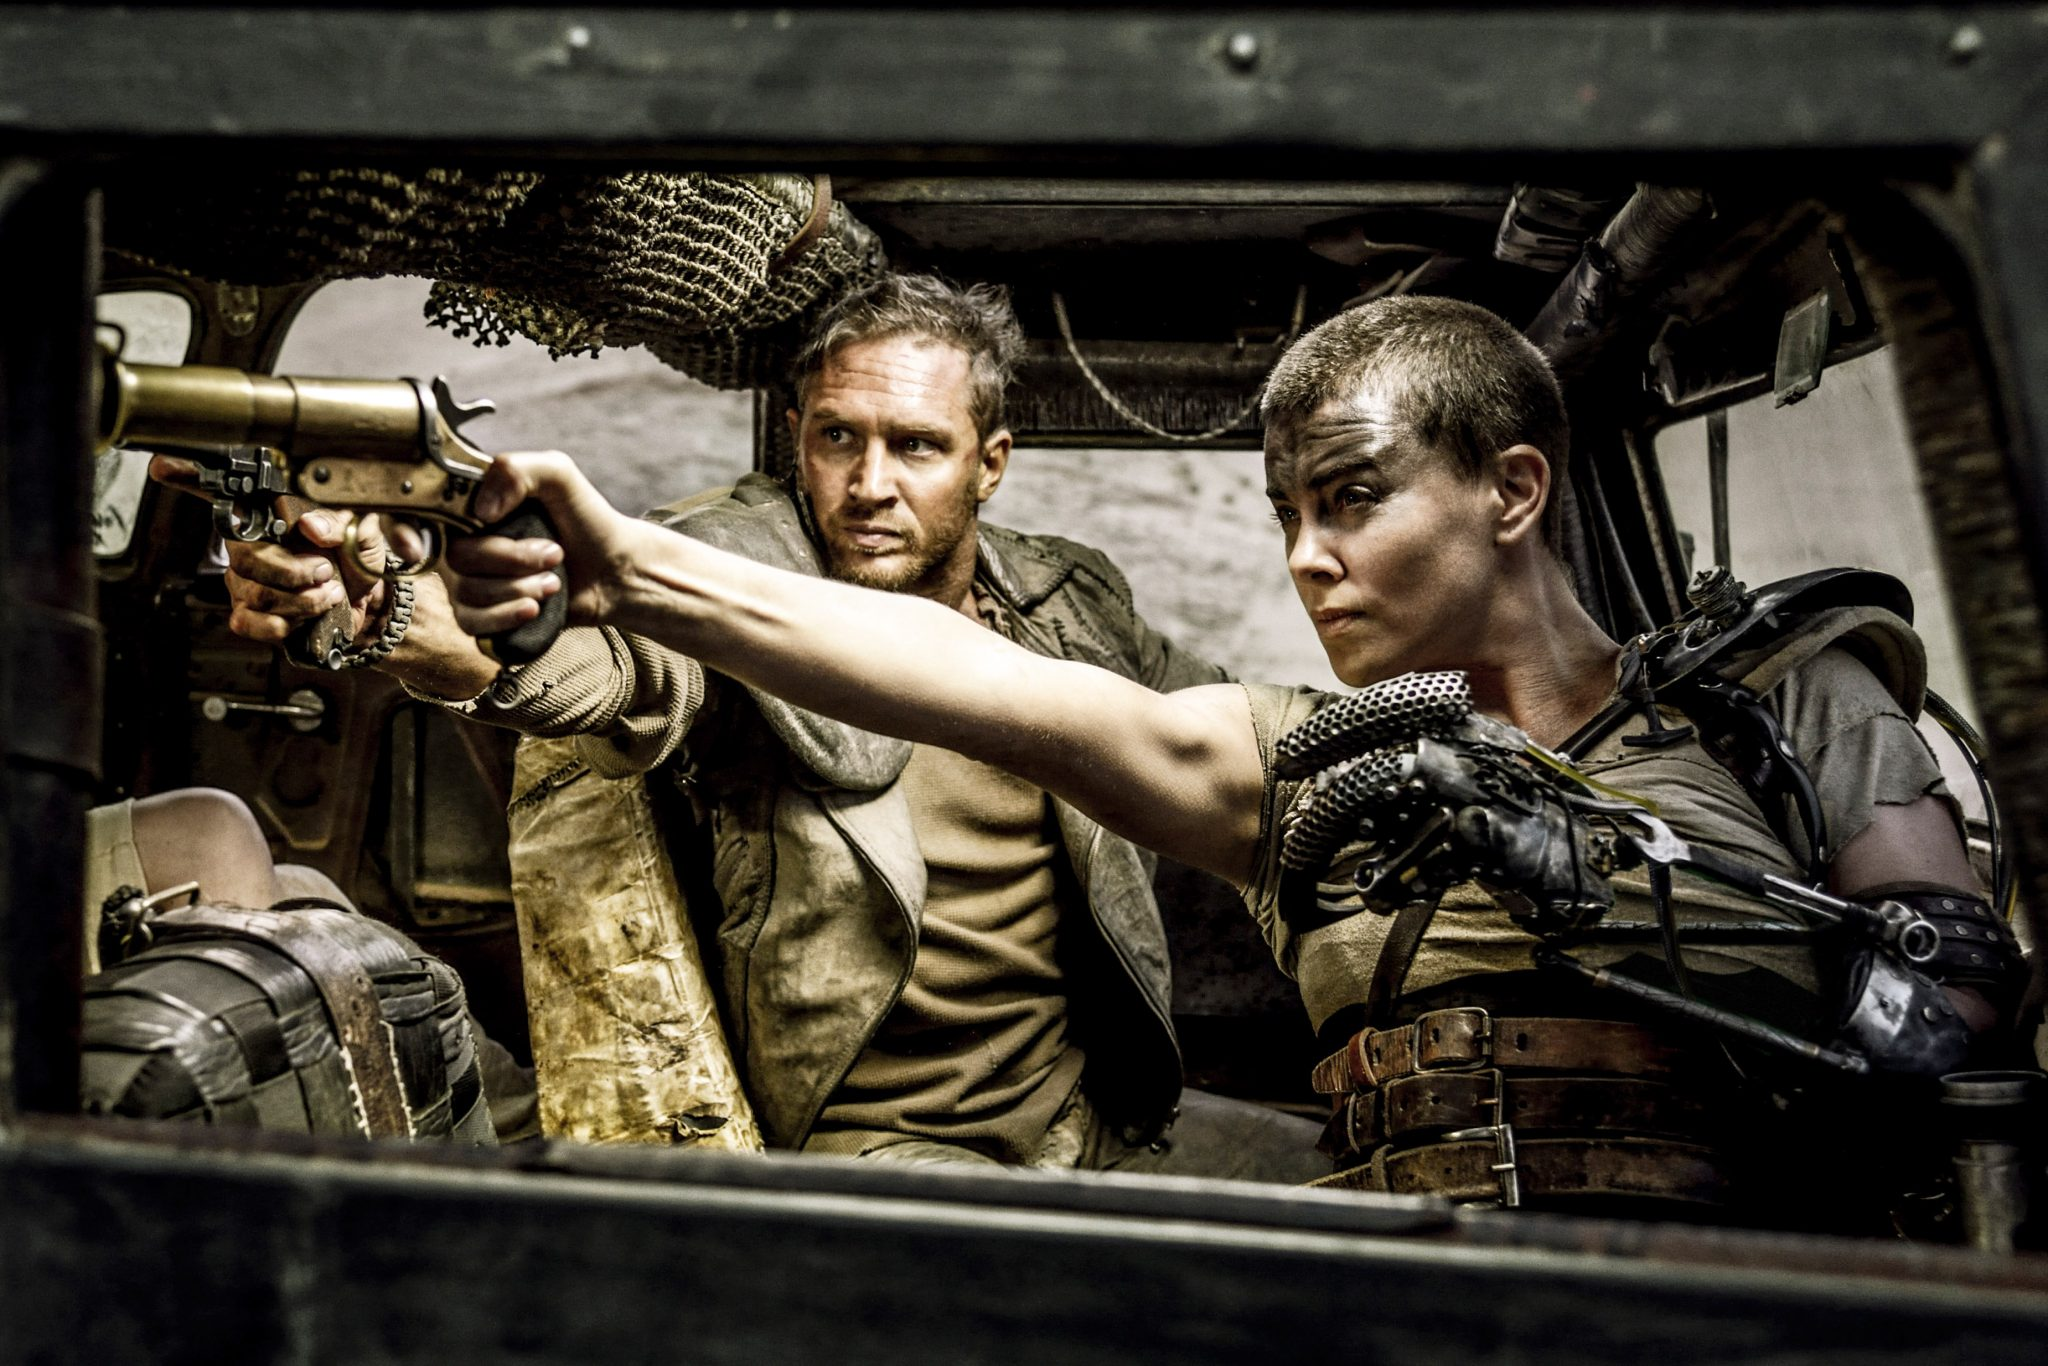 MAD MAX: FURY ROAD - 2015 FILM STILL - CHARLIZE THERON as Furiosa and    Photo Credit: Jasin Boland  © 2015 WV FILMS IV LLC AND RATPAC-DUNE ENTERTAINMENT LLC - U.S., CANADA, BAHAMAS & BERMUDA  © 2015 VILLAGE ROADSHOW FILMS (BVI) LIMITED - ALL OTHER TERRITORIES